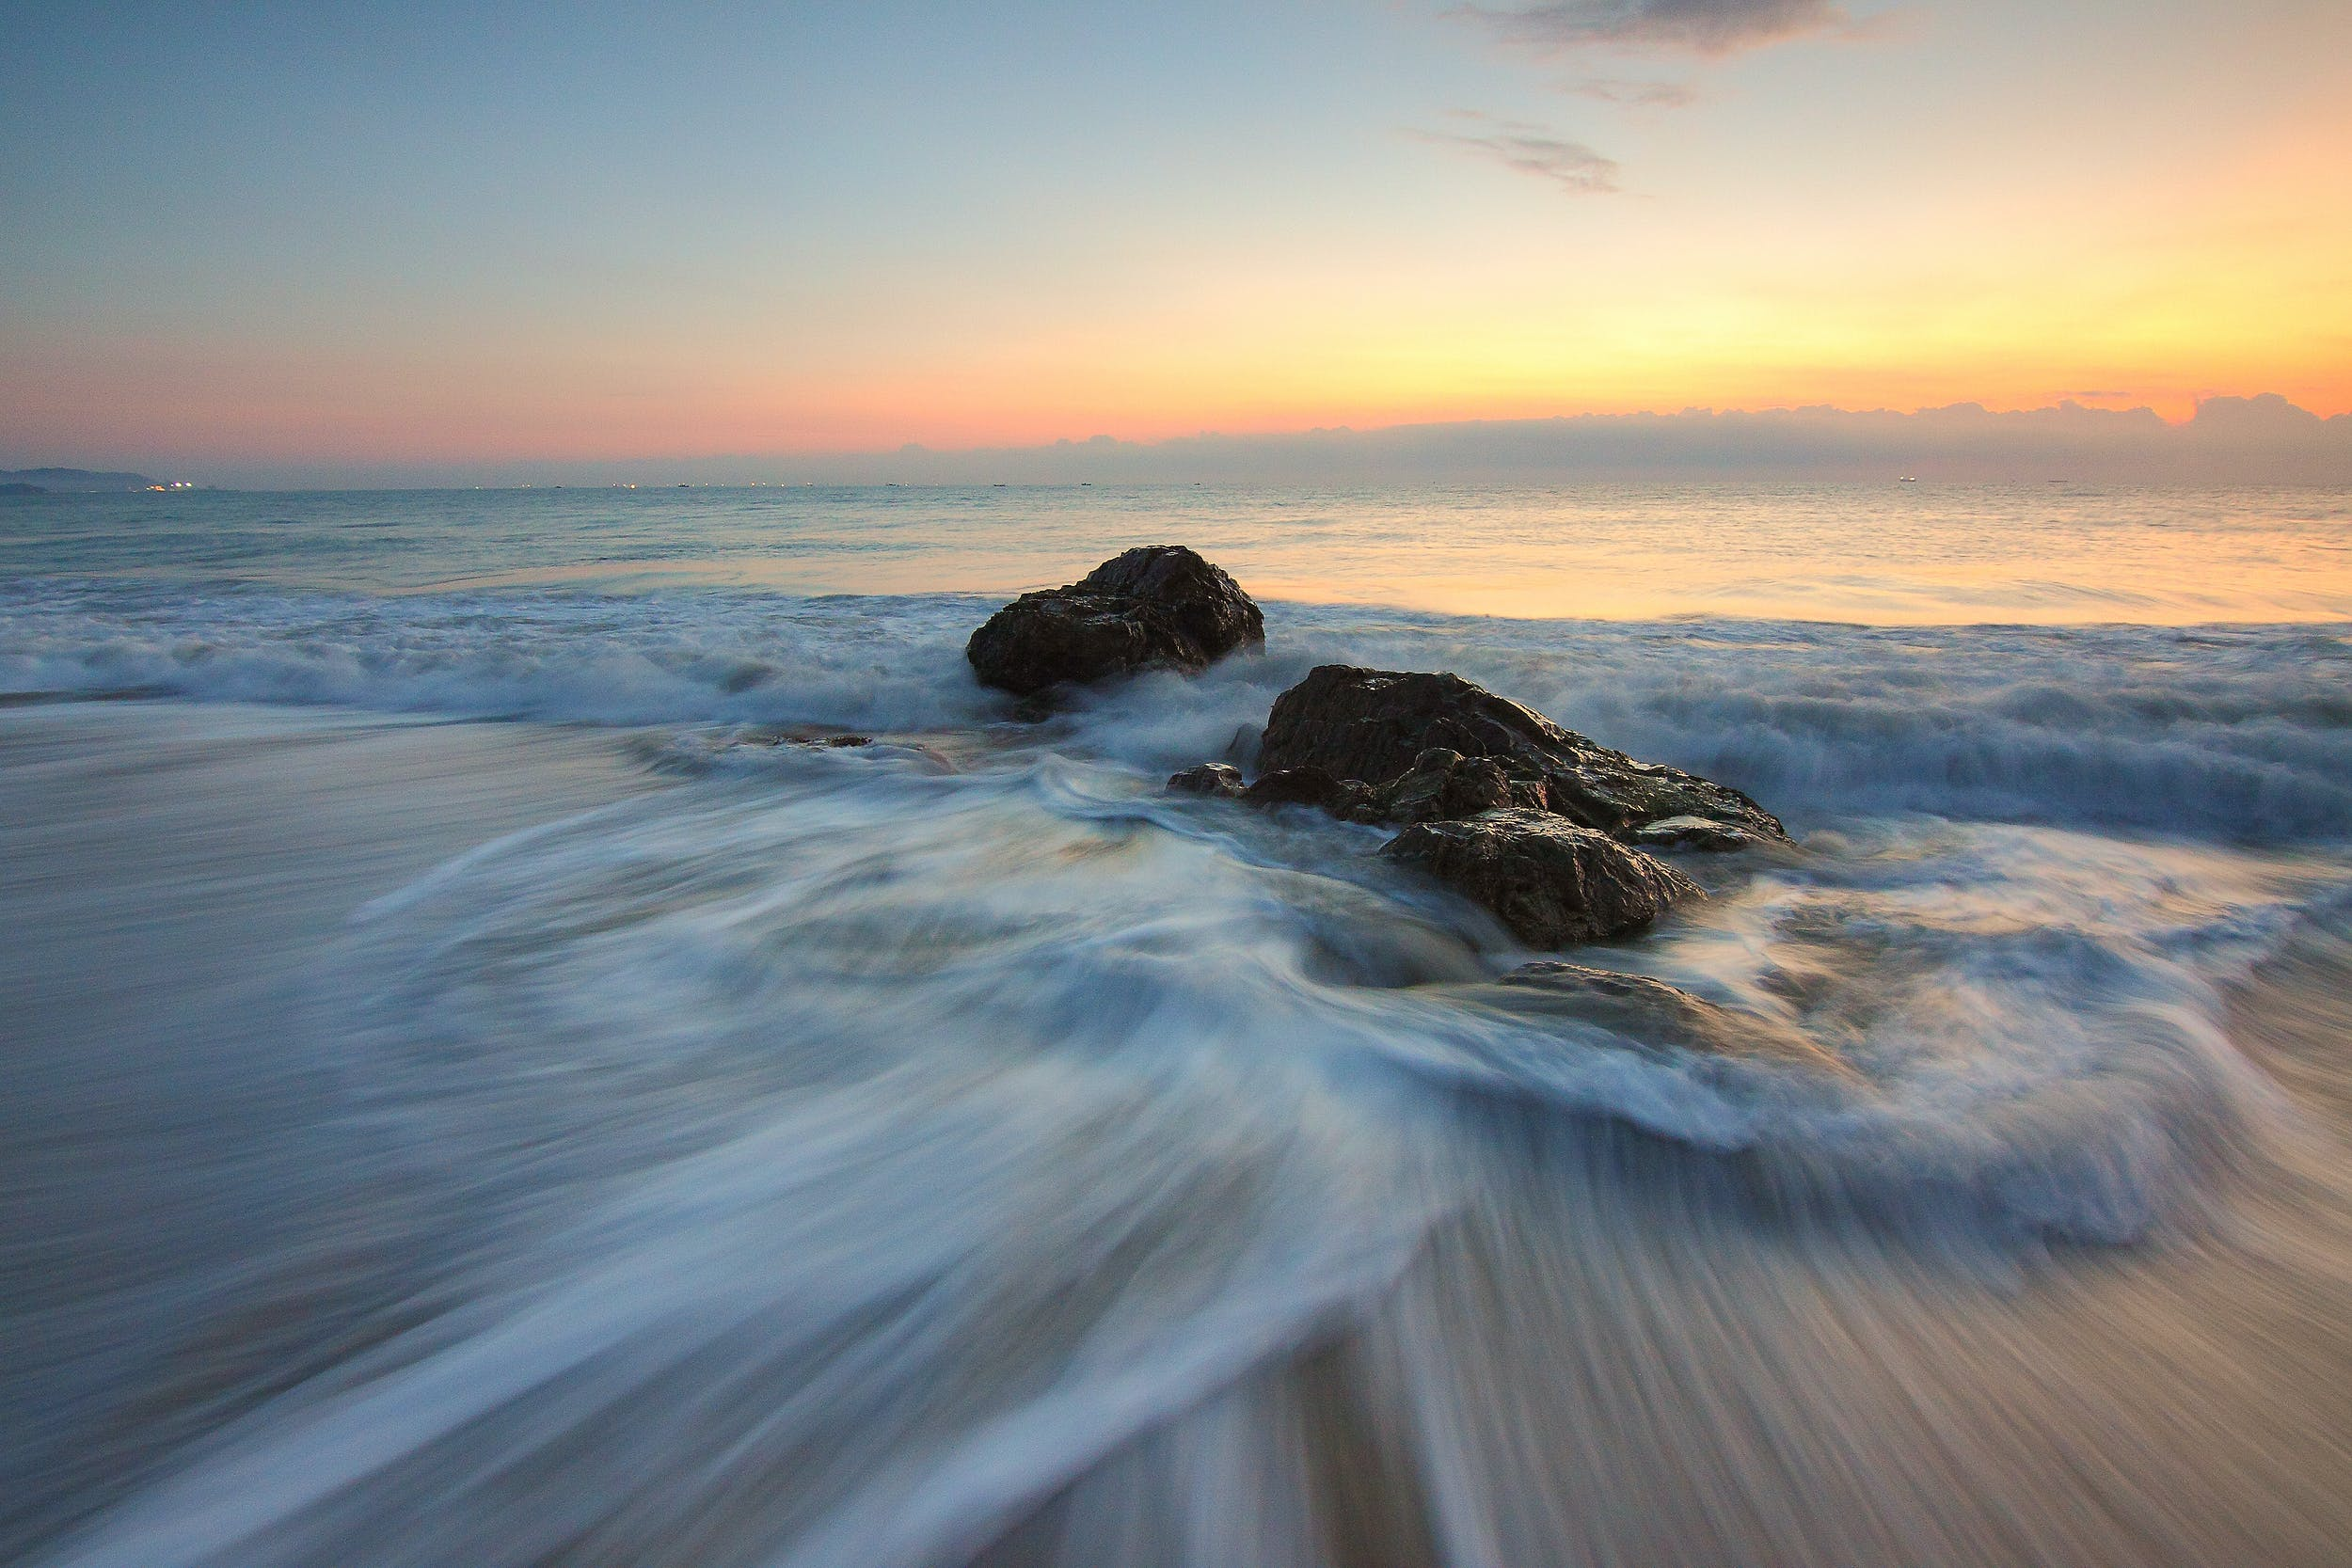 Time Lapse Photography of Sea Wave on Seashore during Daytime